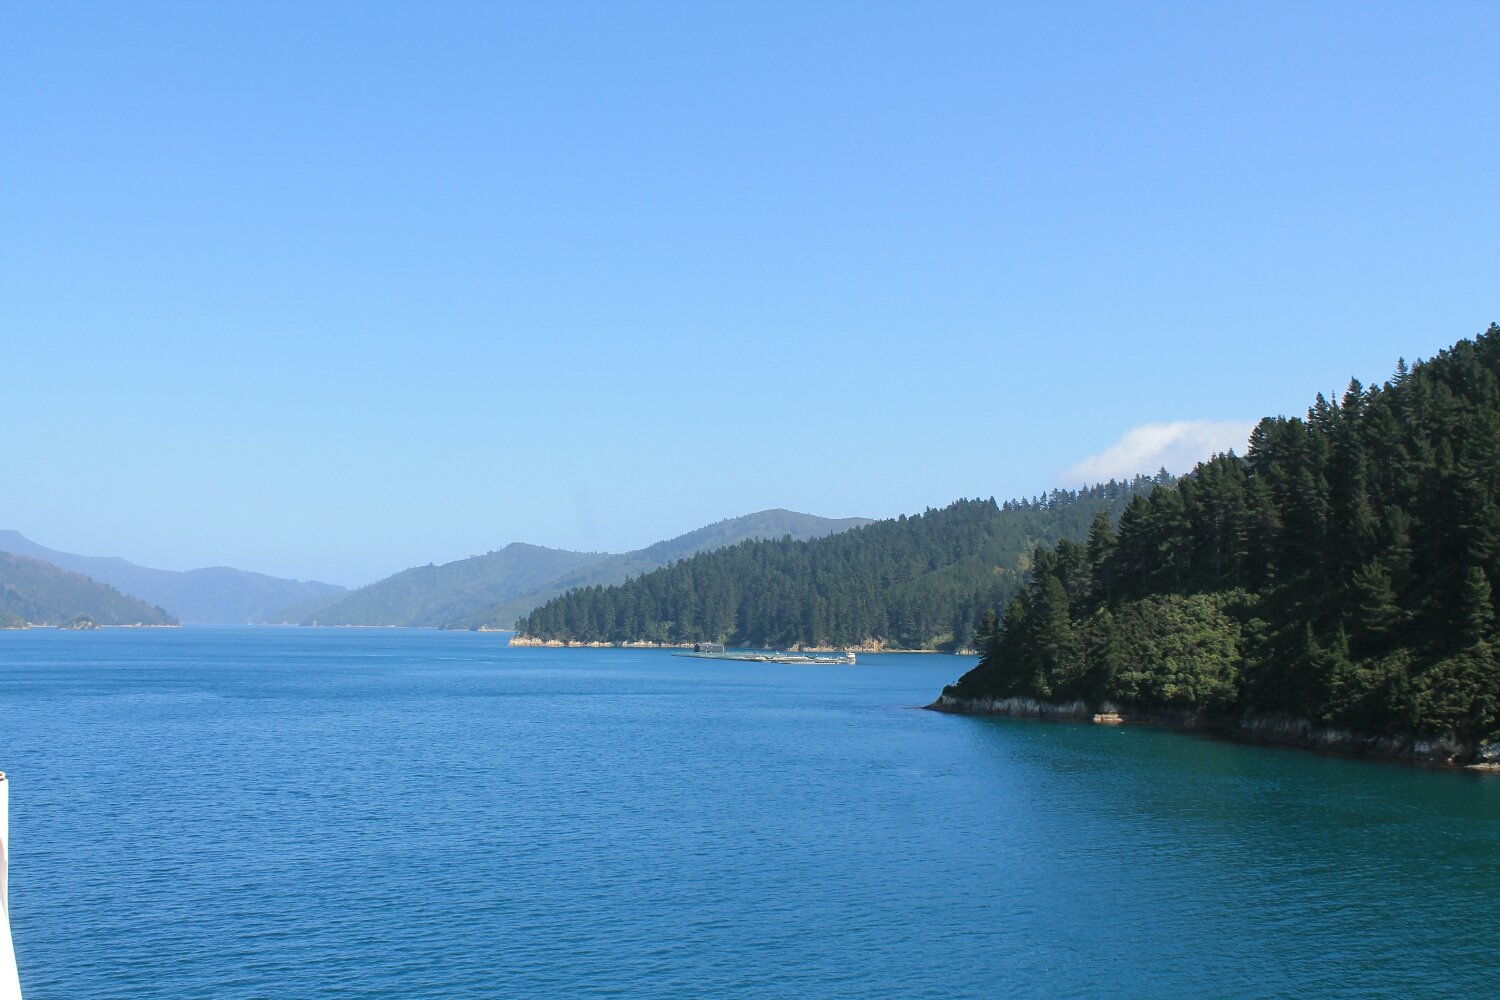 View from the Interslander ferry from the north to south island